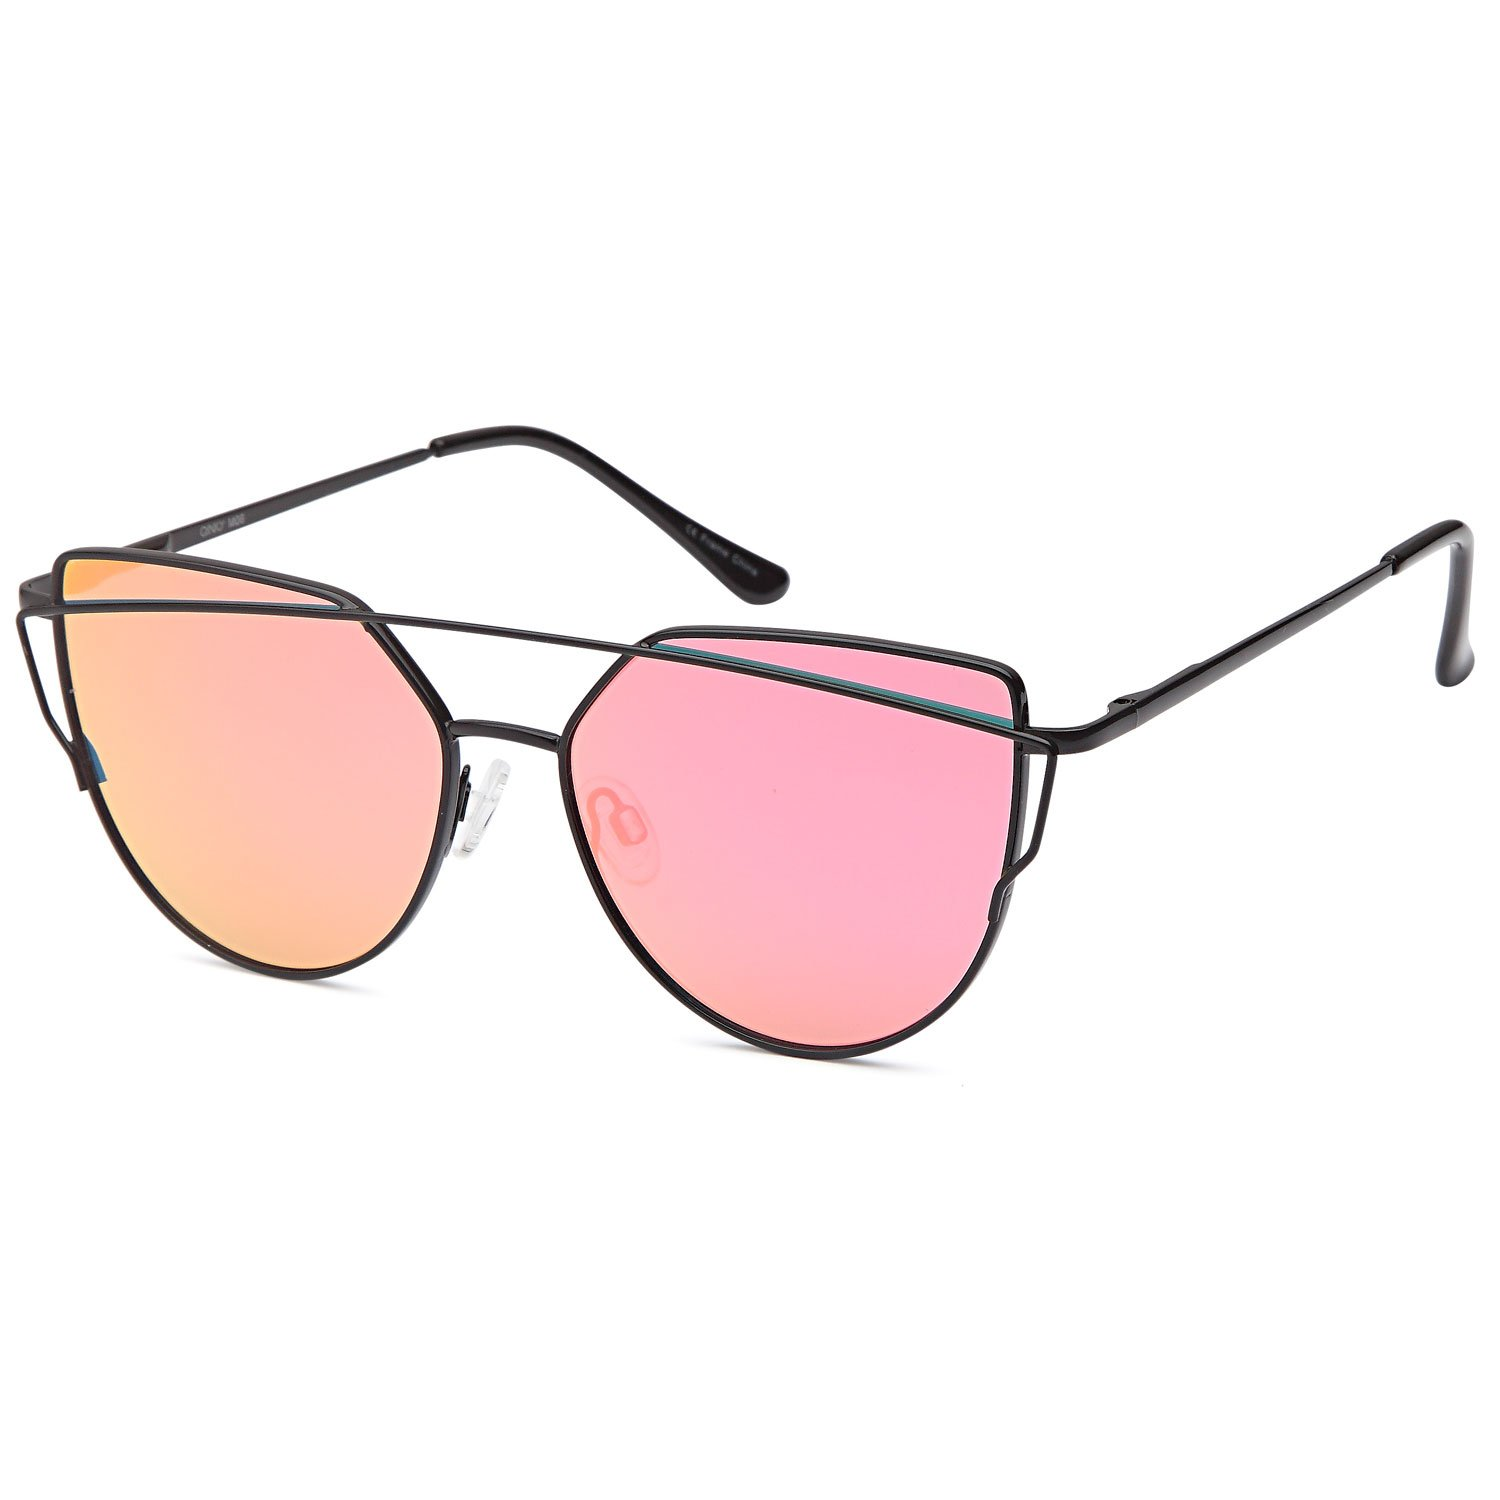 QINKY Womens Cateye Aviator Metal Frame Cross Bar Sunglasses with Mirror Flash Flat Lens - Choose Your Variation